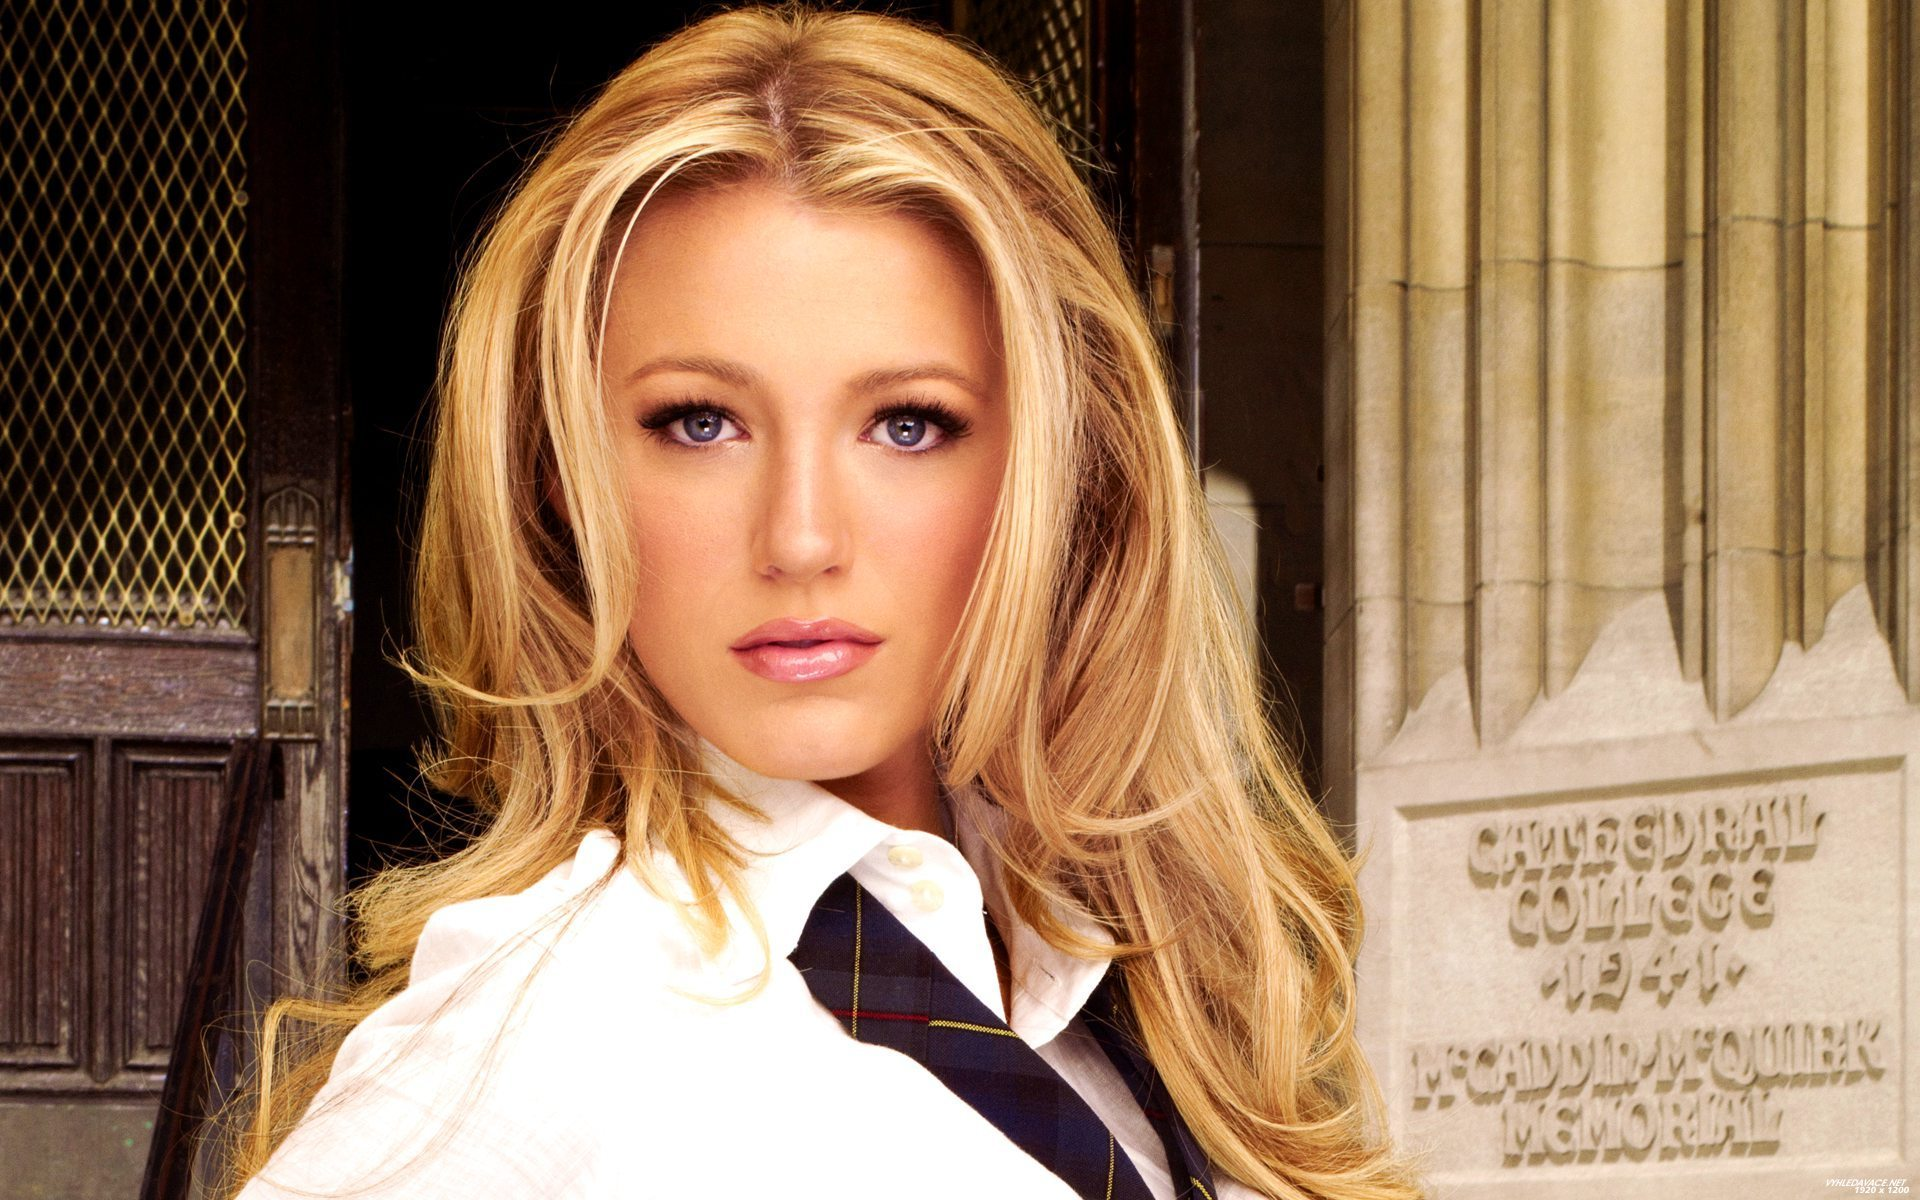 Serena  Serena Van Der Woodsen Wallpaper 5451472  Fanpop